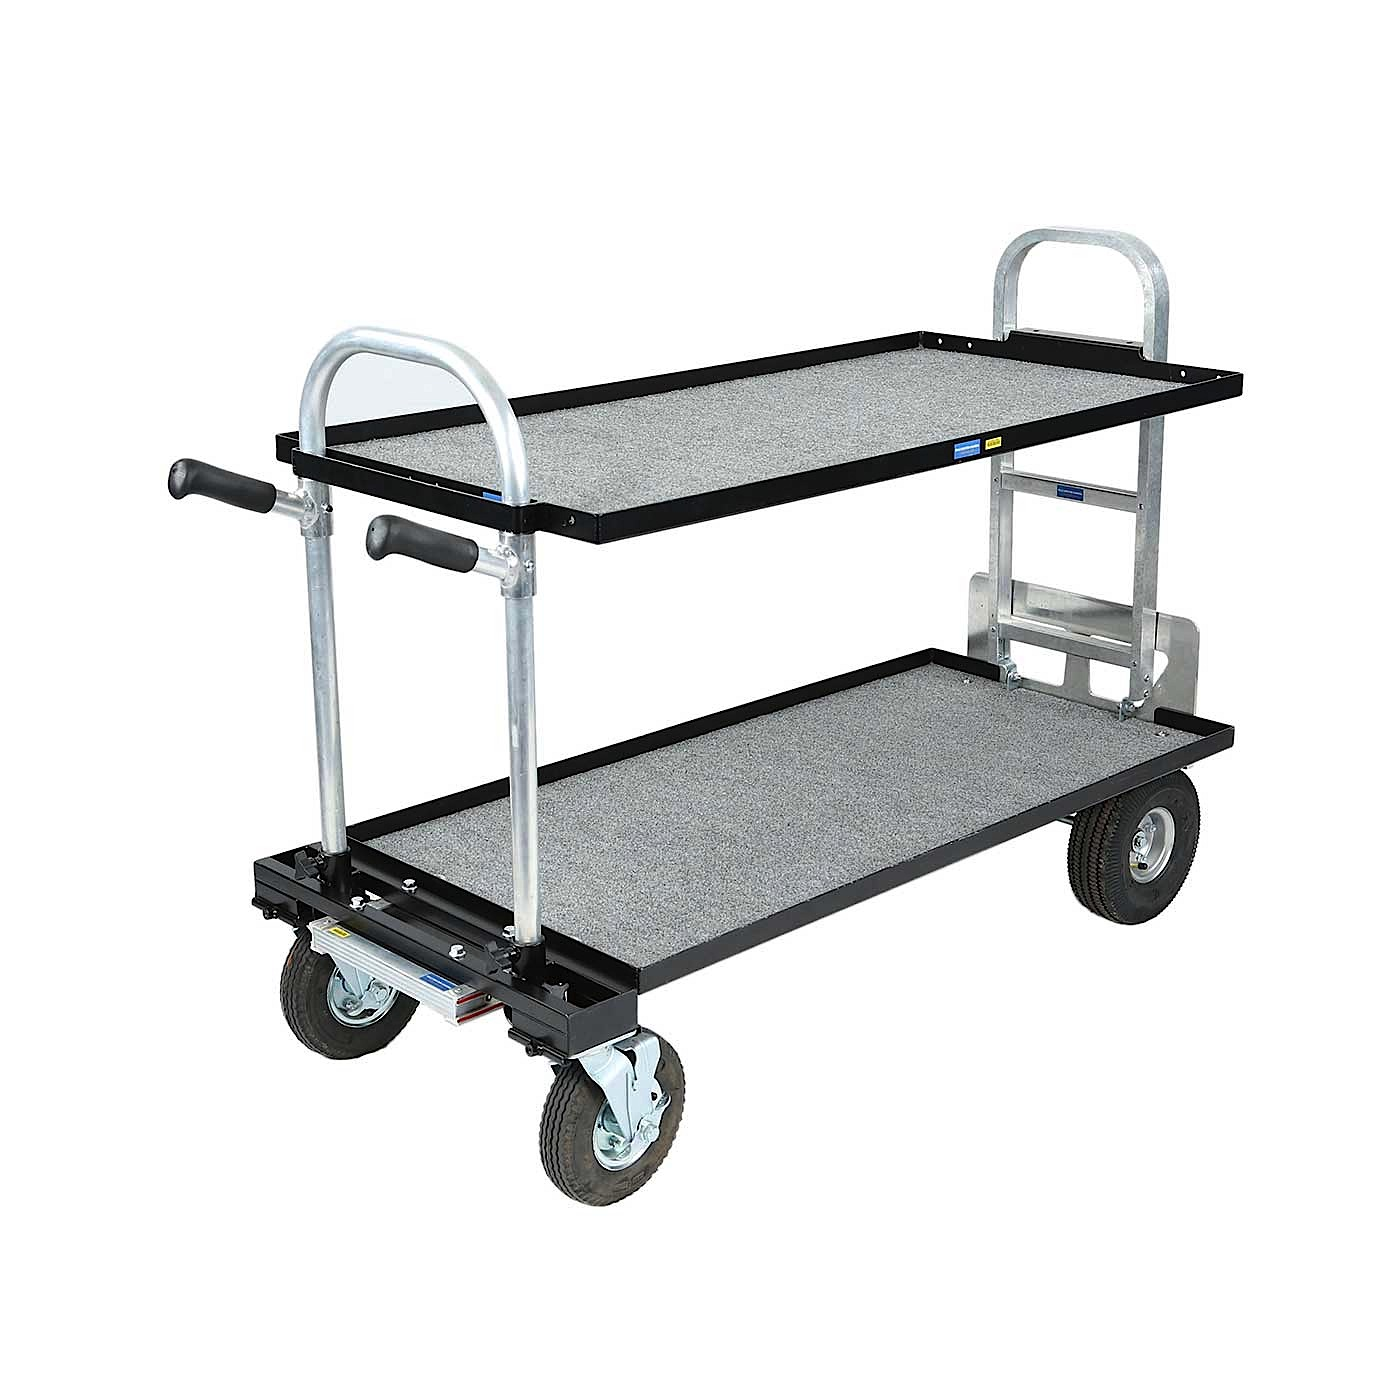 Magliner Gemini 24x36 Senior Cart with Wide Shelf